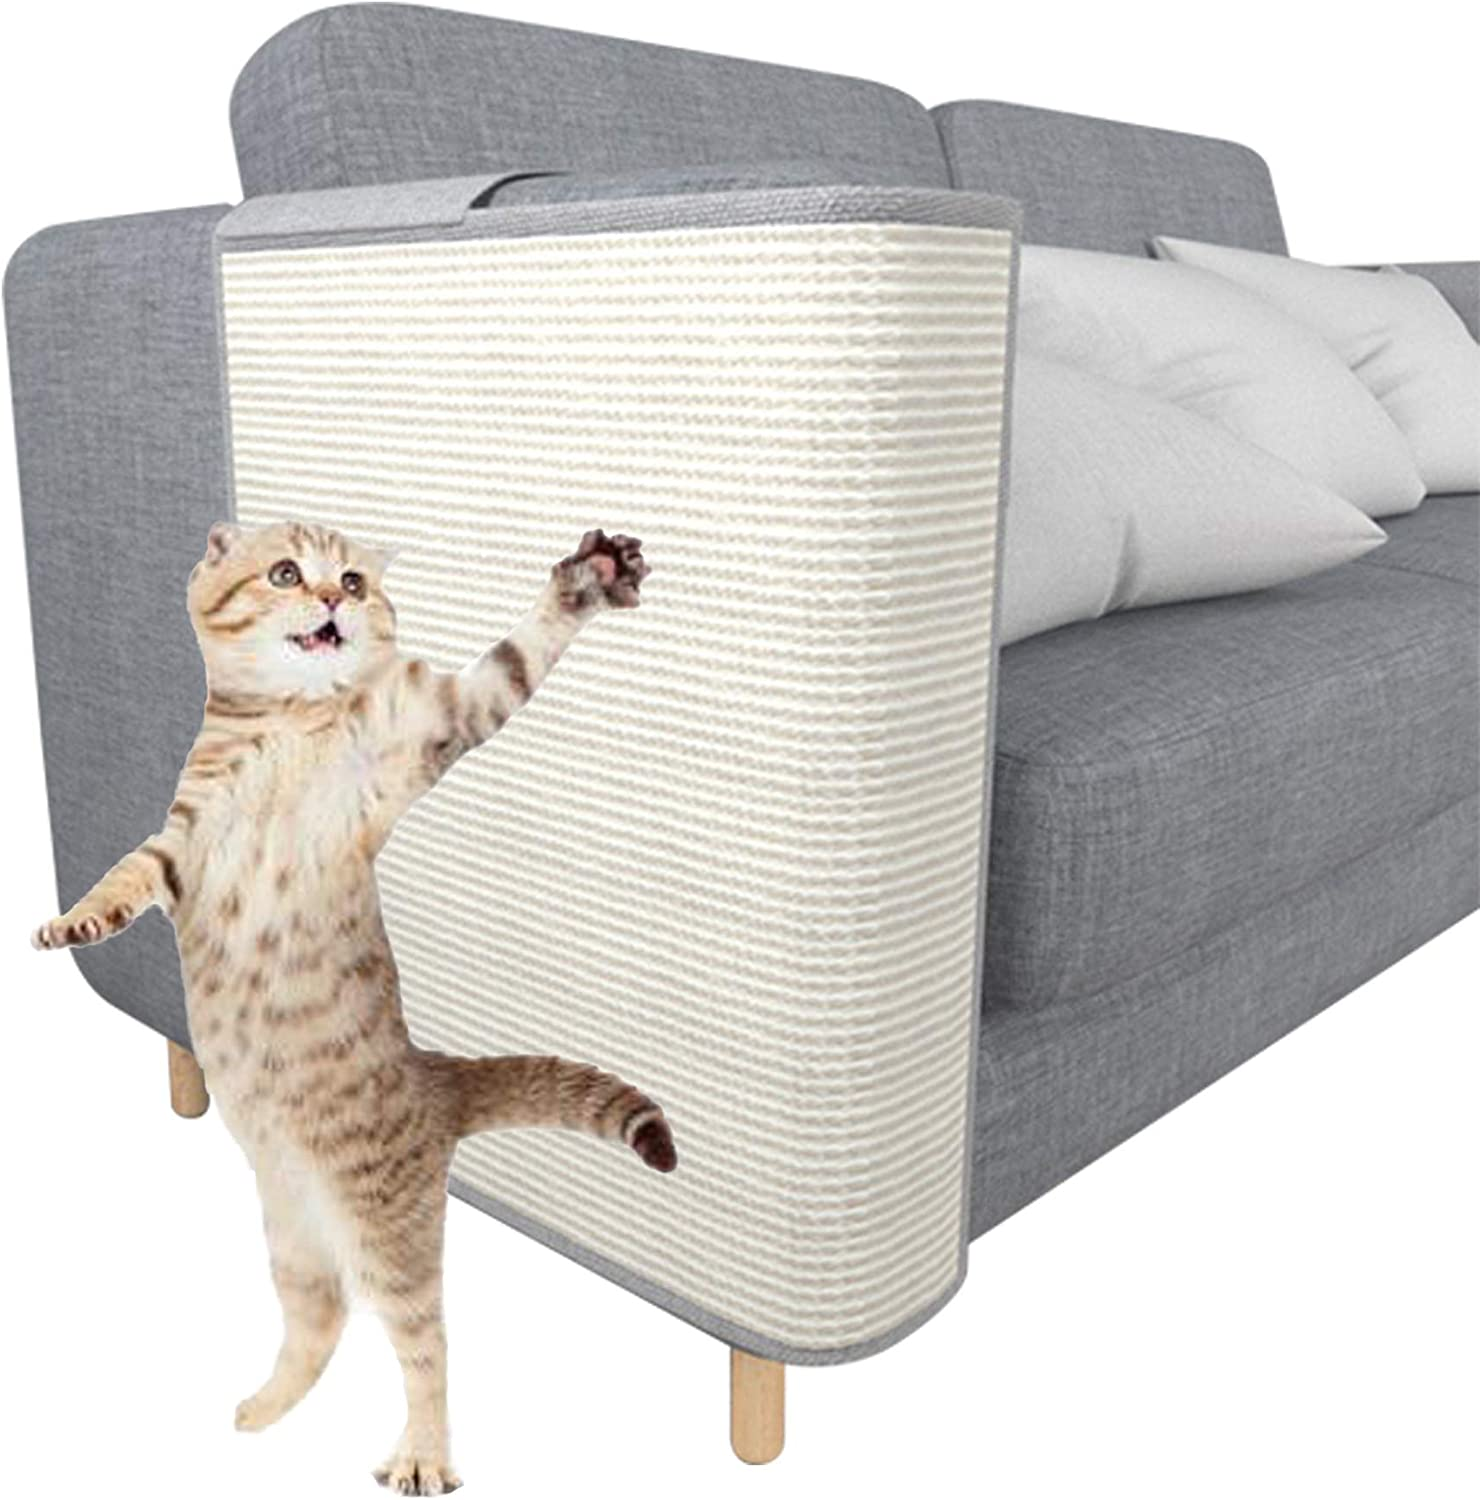 Cat Scratcher Couch Protector Now on sale - Ranking TOP12 Furniture Sisal Protecti Natural